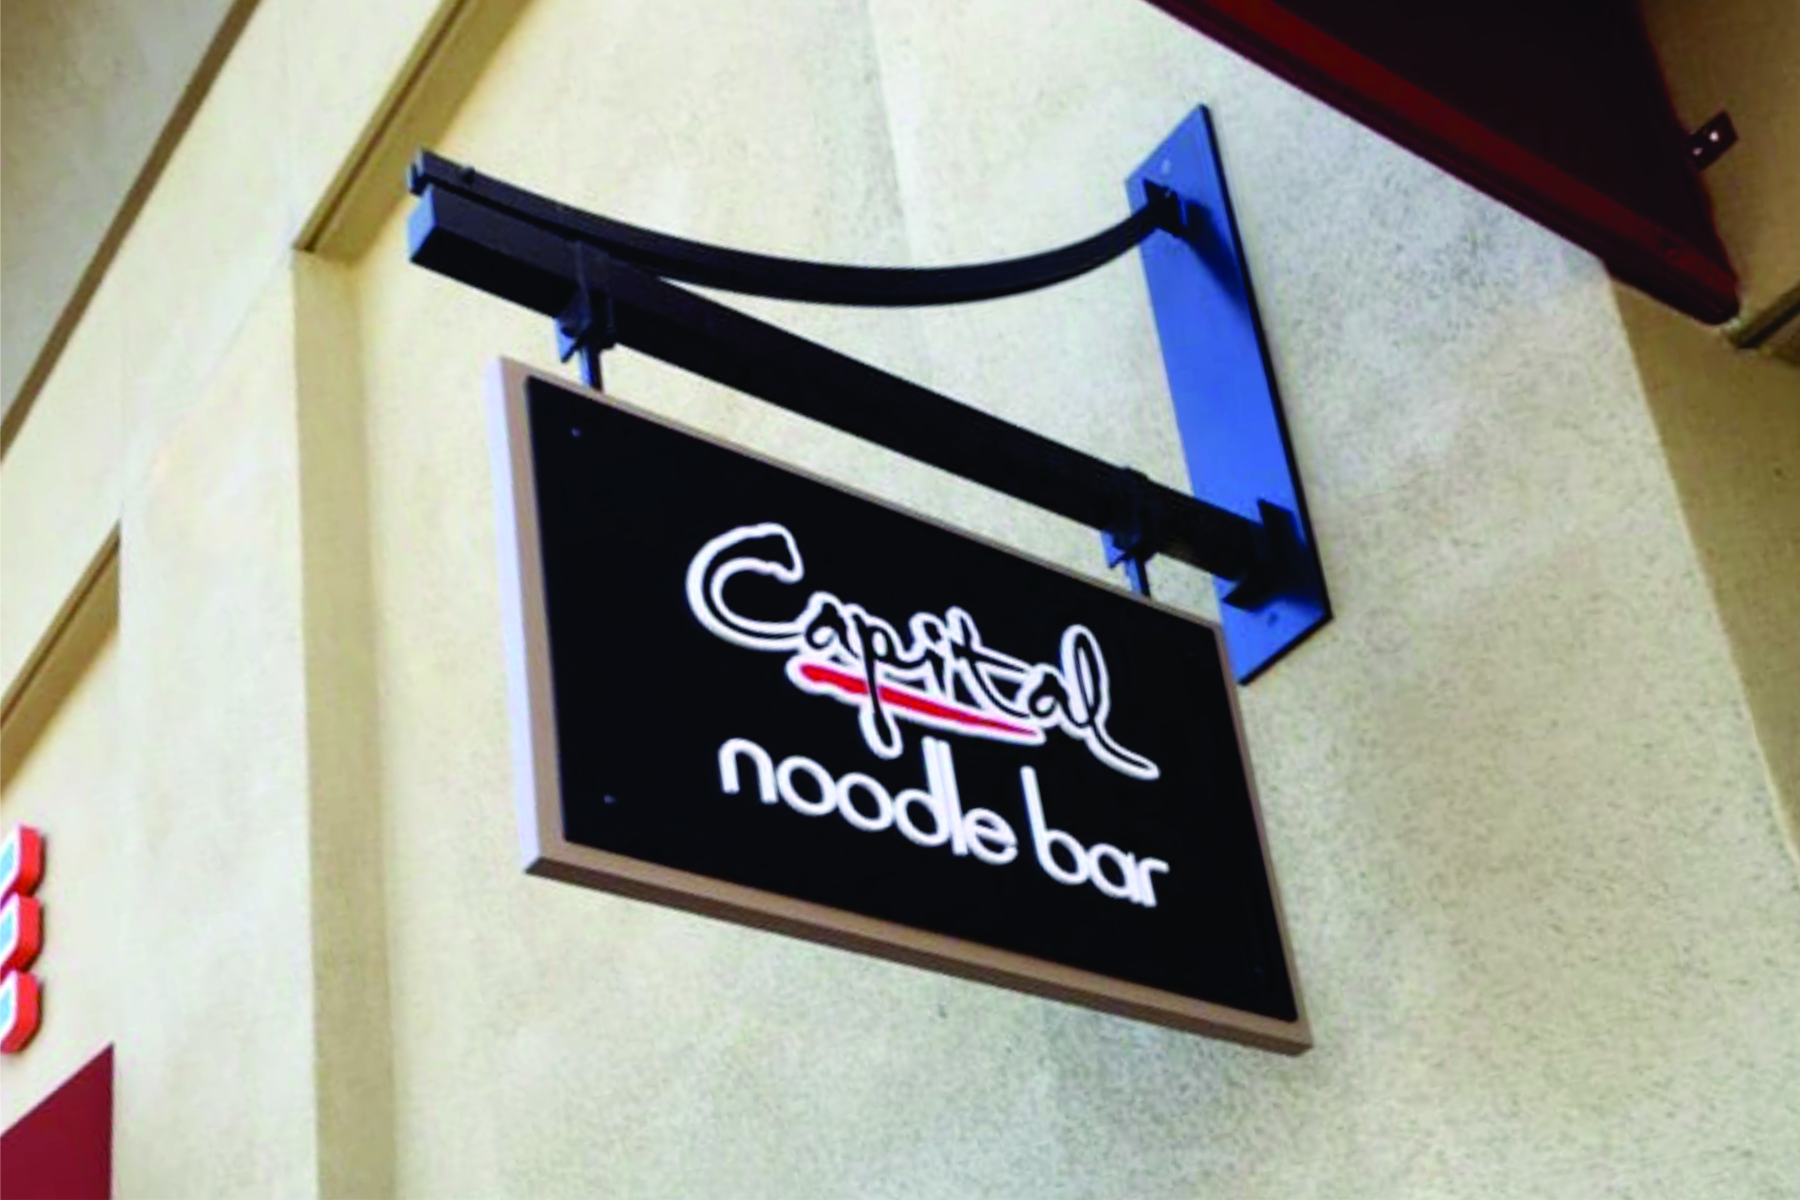 Capital Noodle Bar